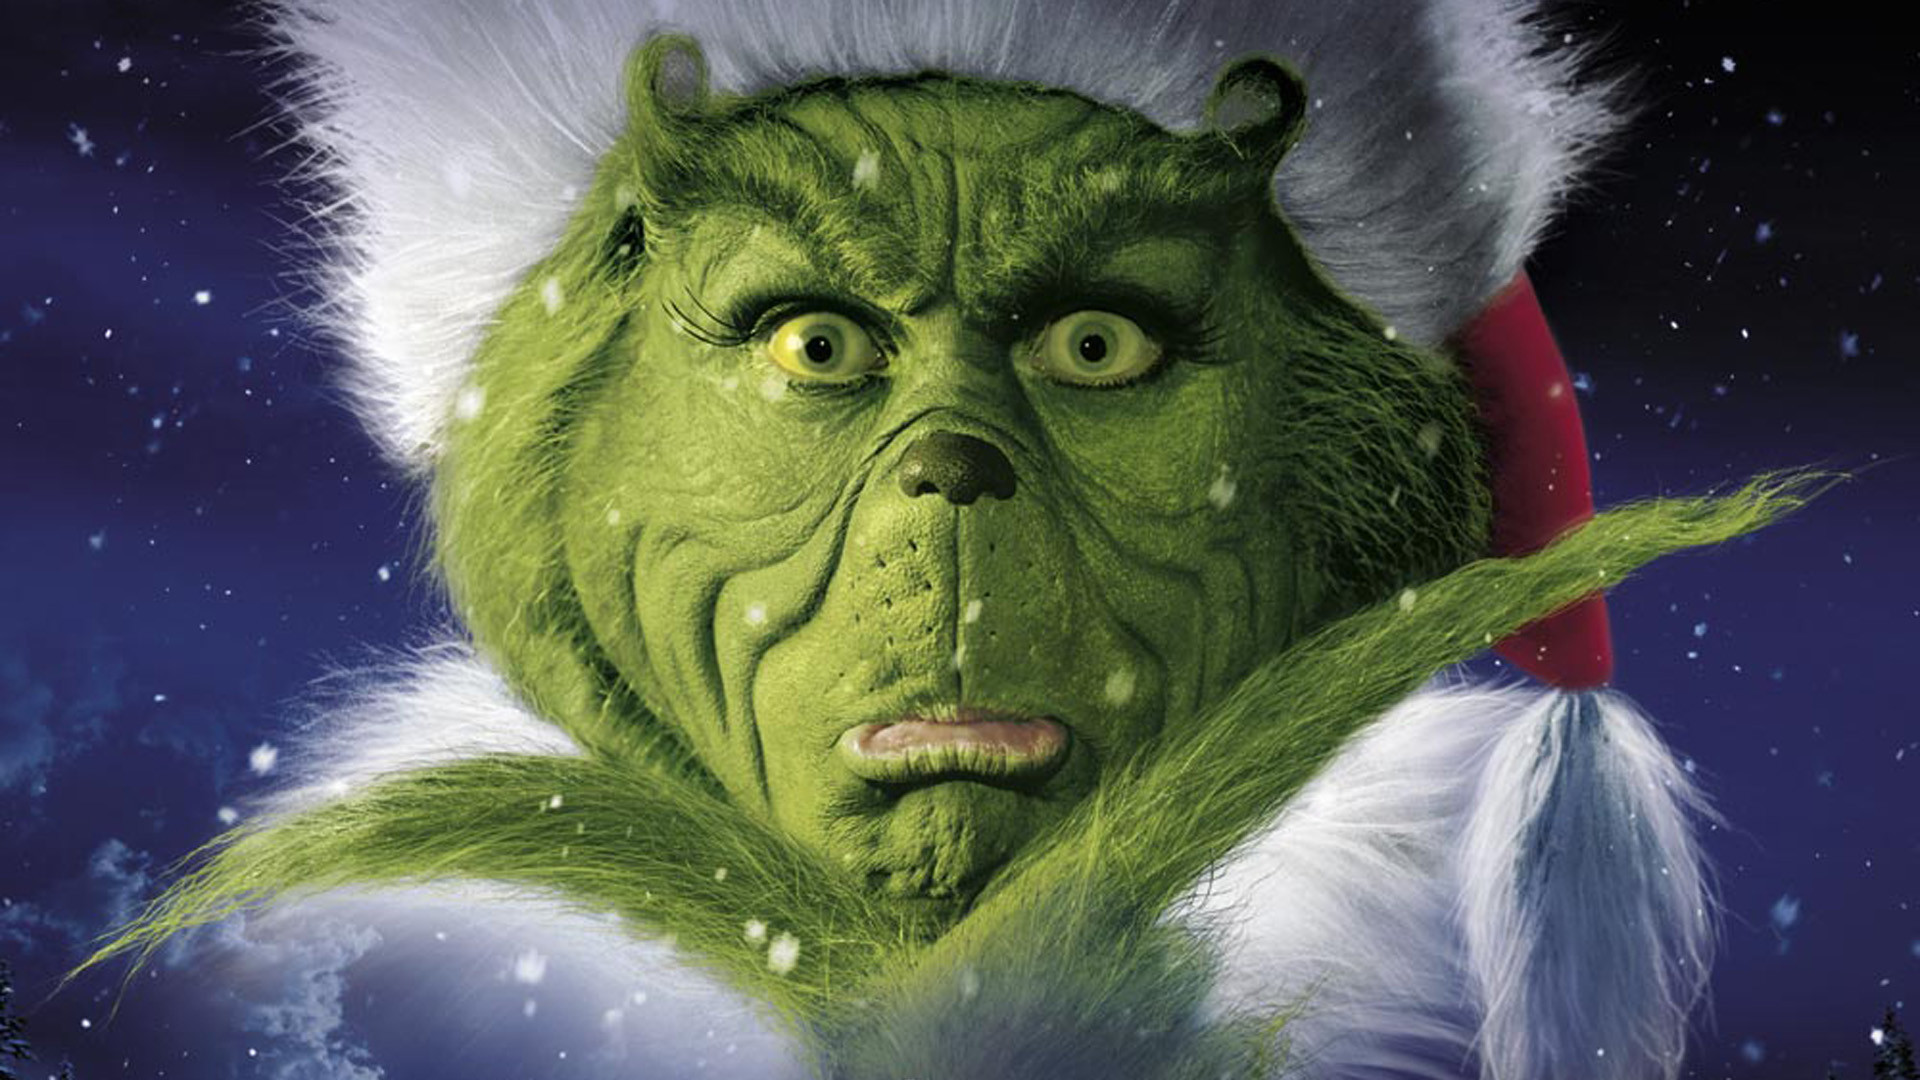 The-Grinch-how-the-grinch-stole-christmas